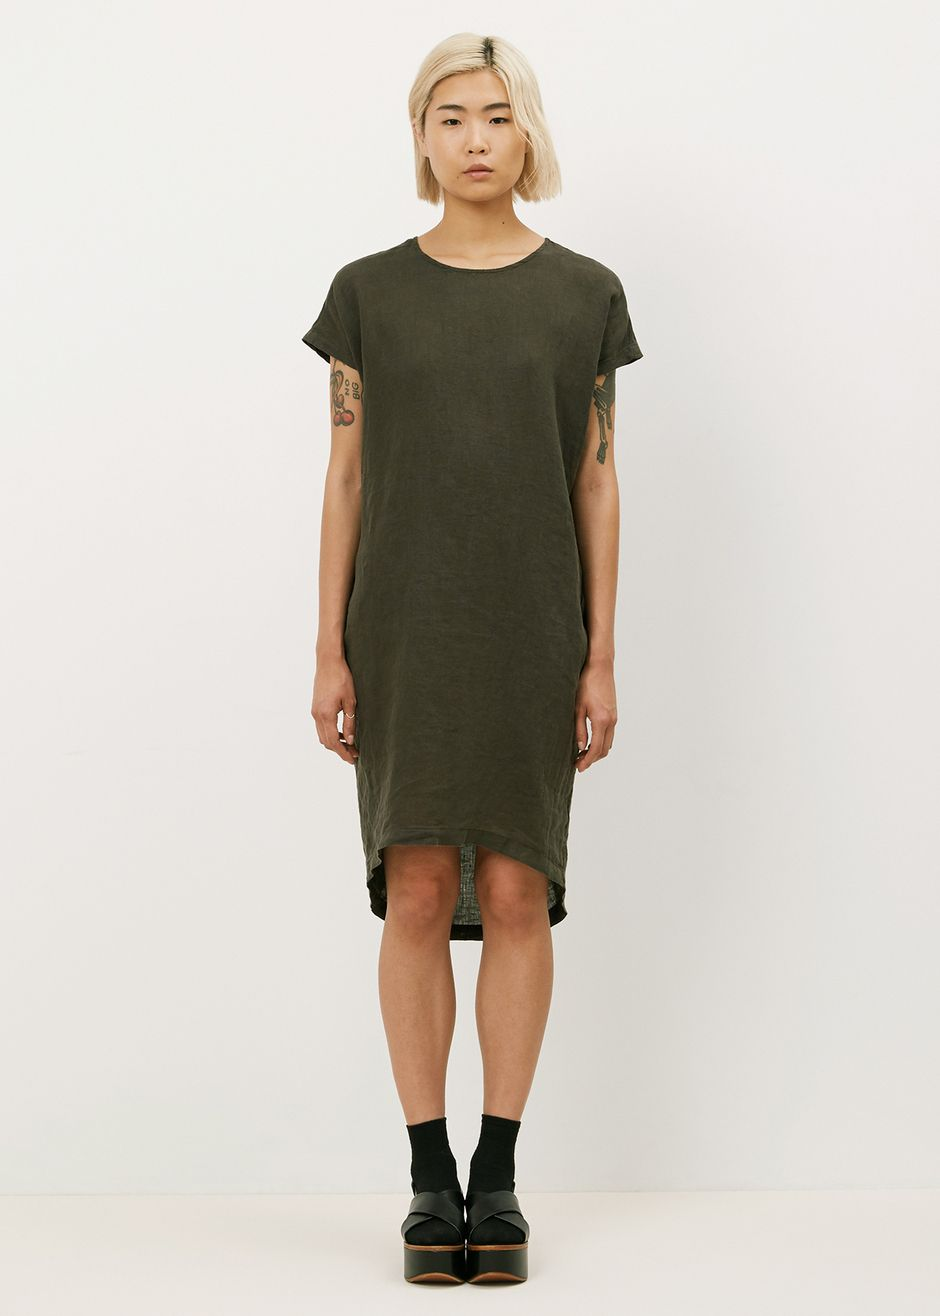 Black crane pleated cocoon dress charcoal life uniform